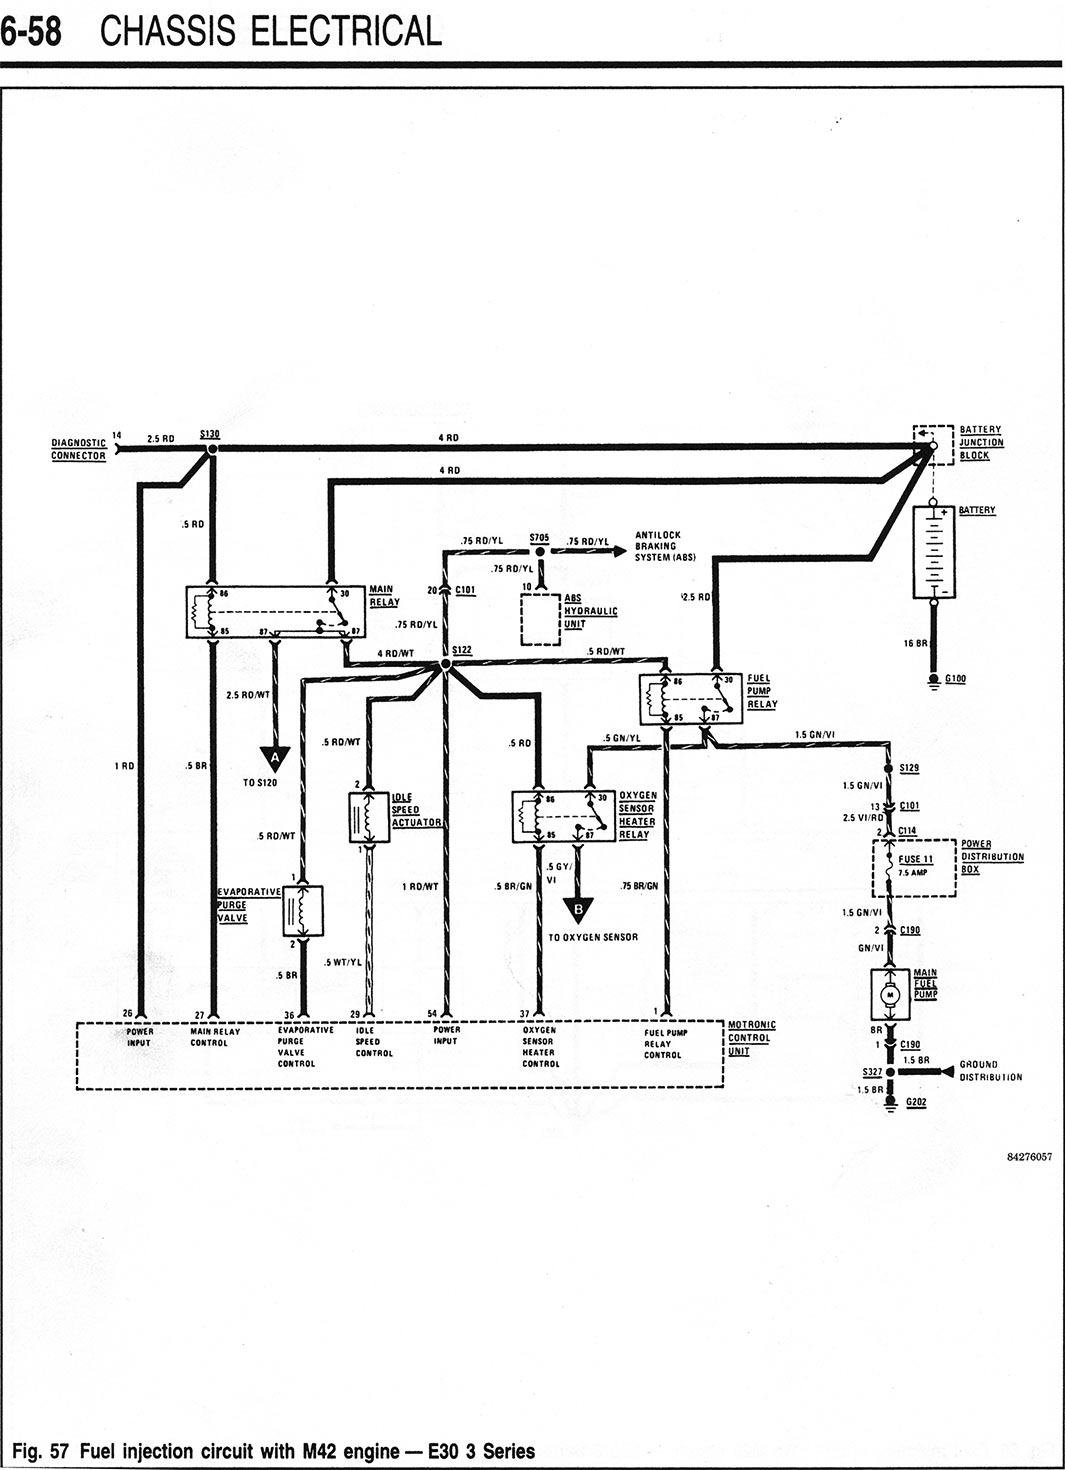 PG658 m42 starter fuel injection wiring diagrams securitron m62 wiring diagram at alyssarenee.co